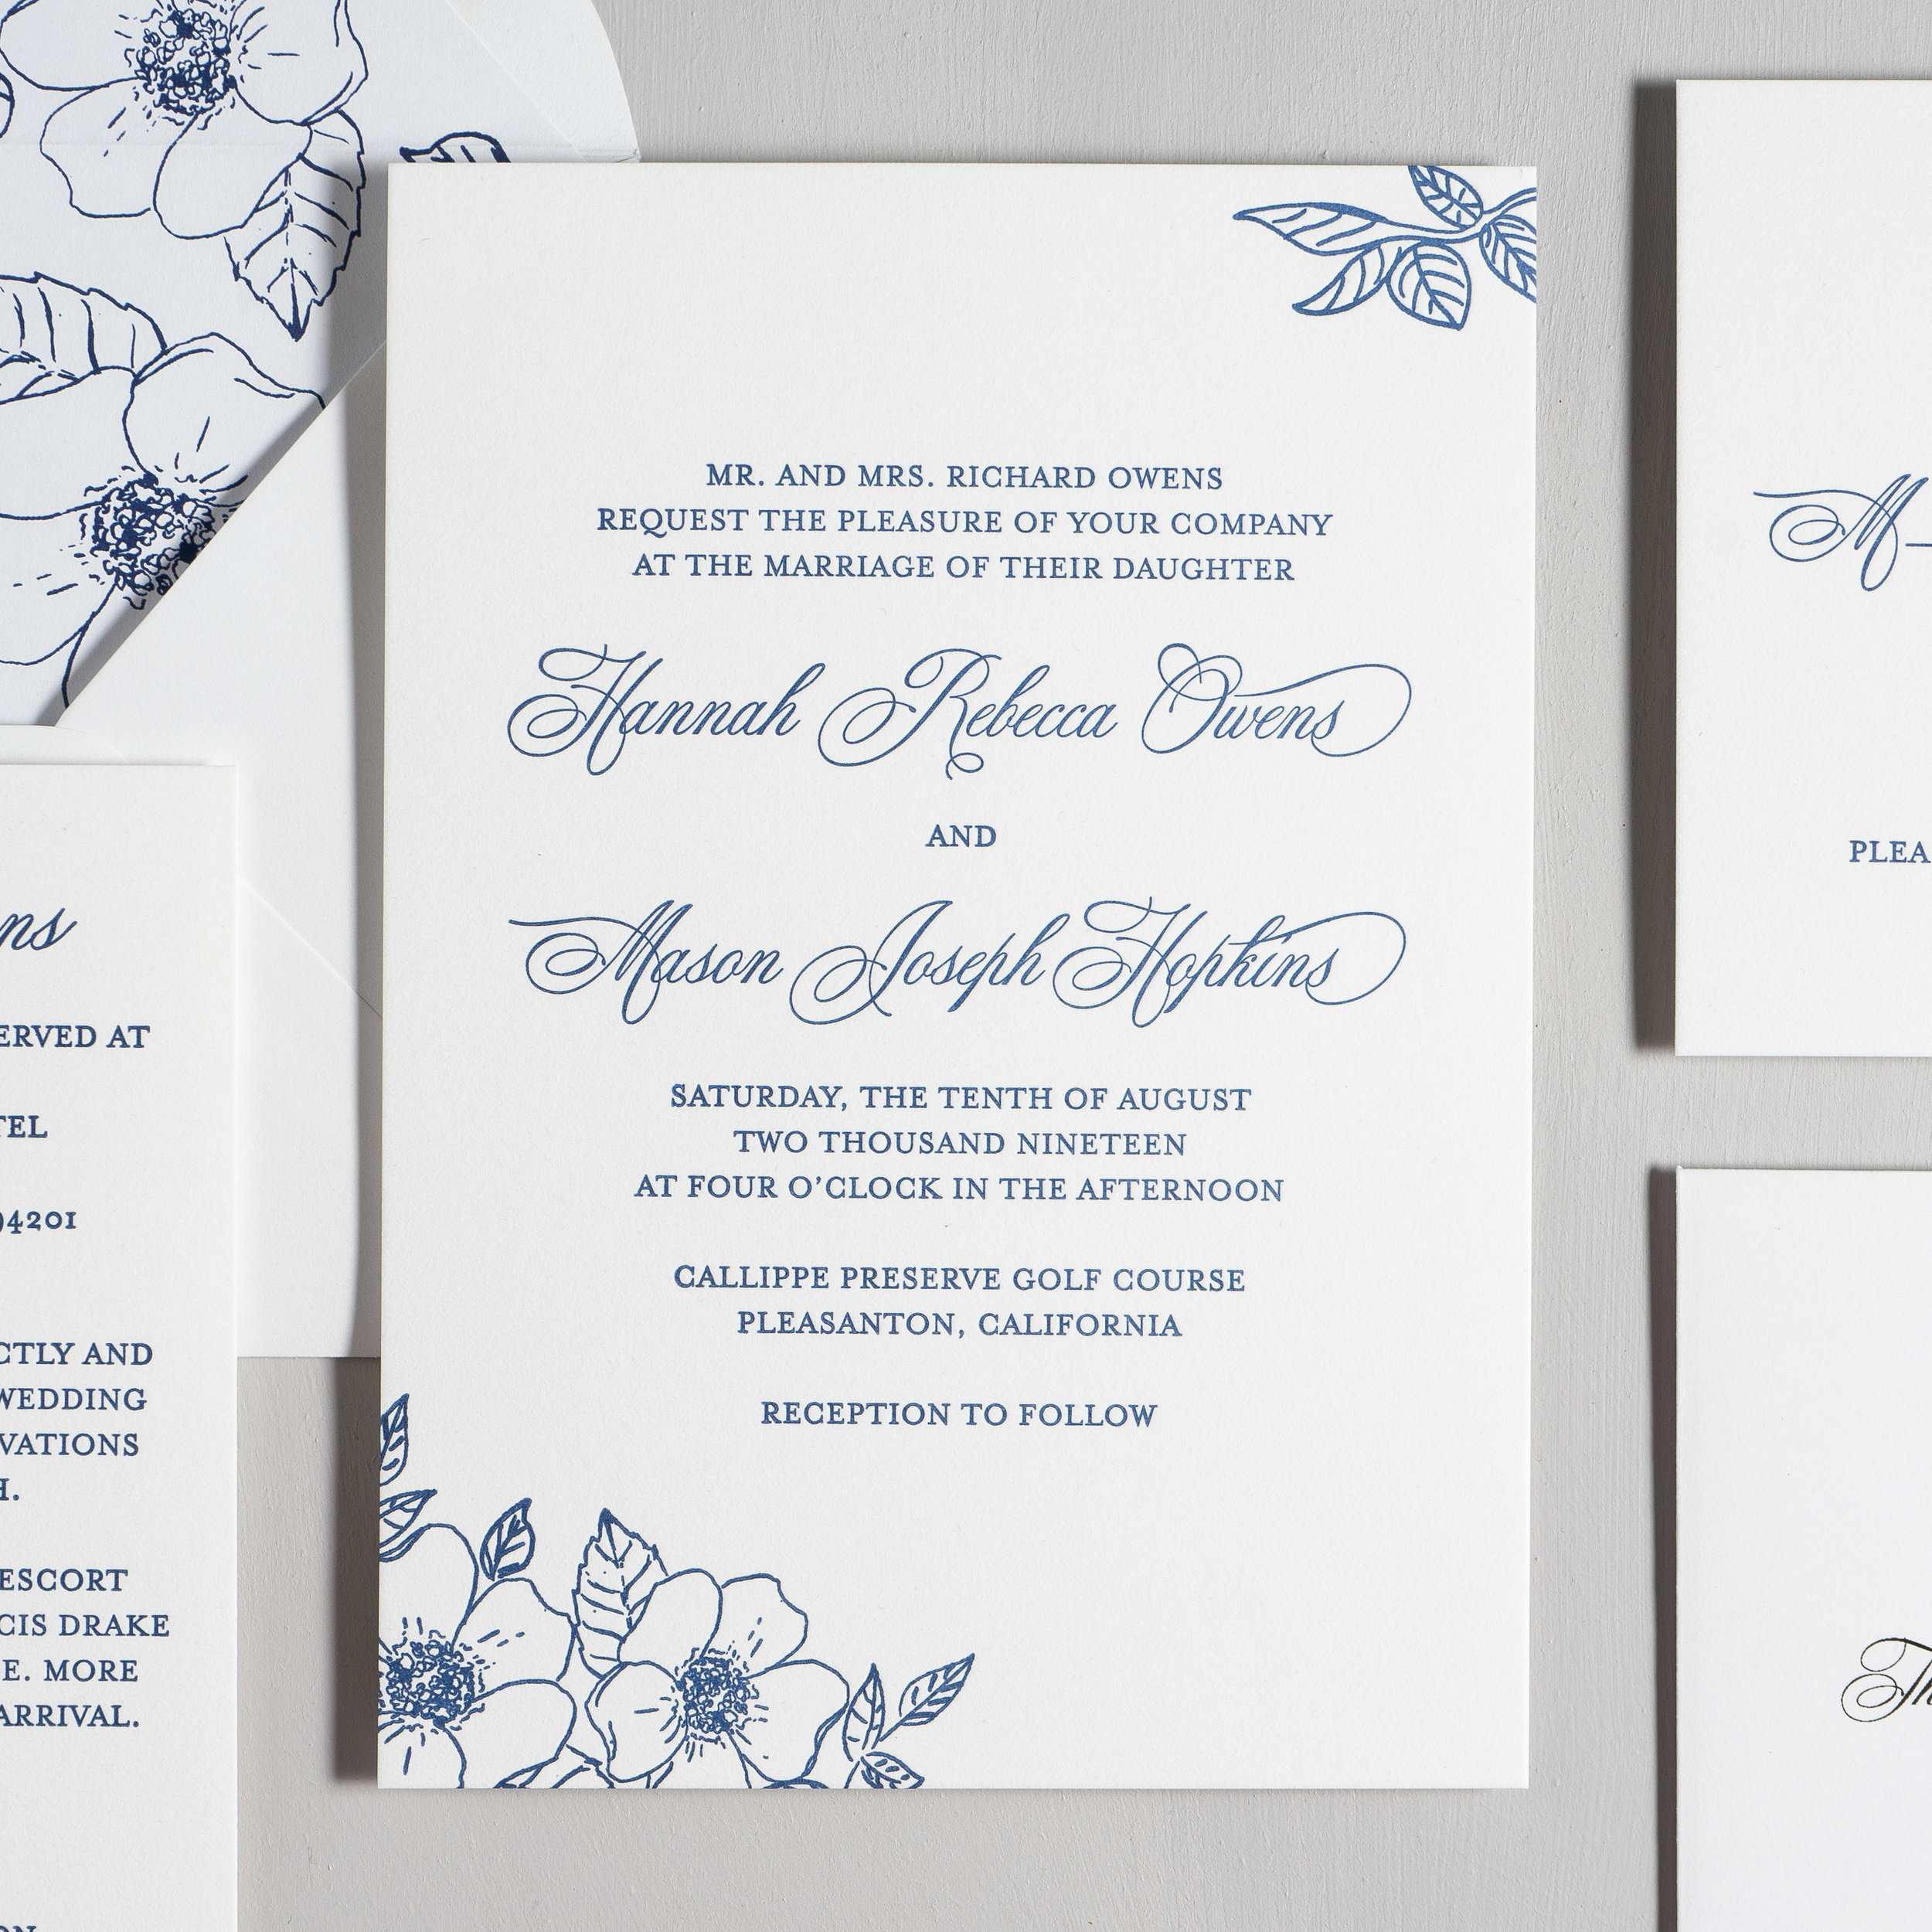 Elegant Anemone Letterpress Wedding Invitations by Just Jurf-2.jpg